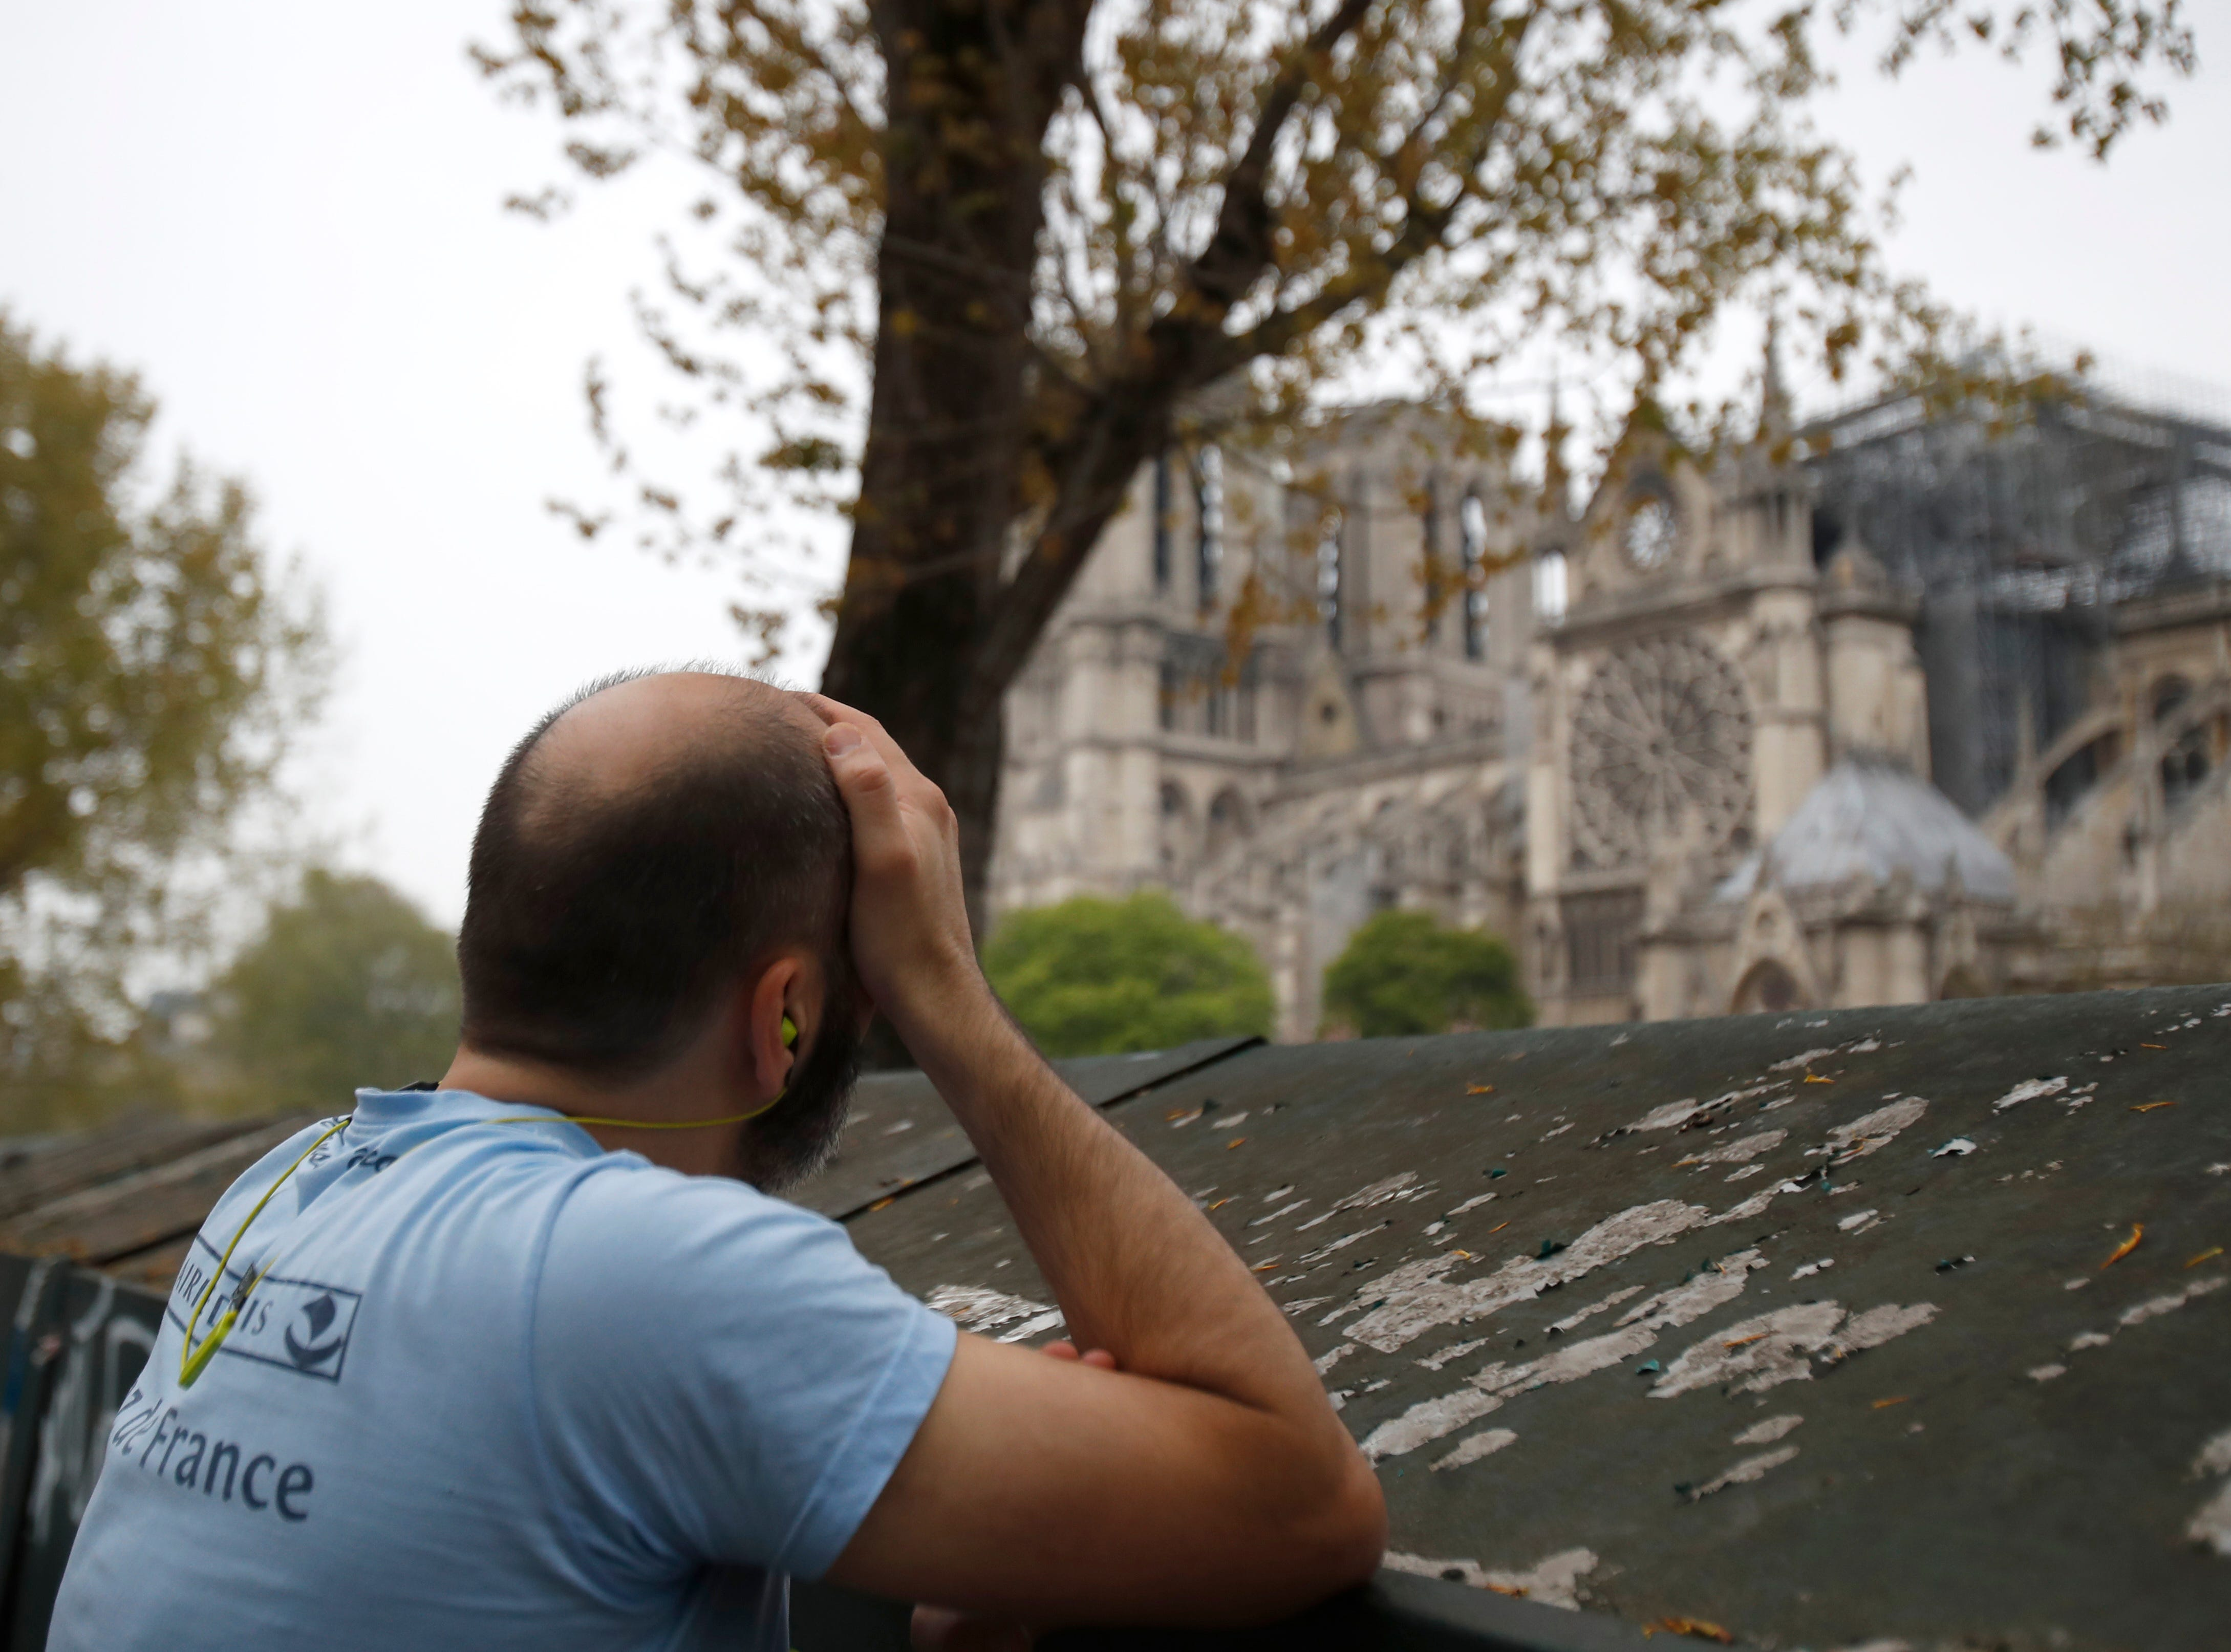 Man holds his head while watching the Notre Dame cathedral after the fire in Paris, Tuesday, April 16, 2019. Experts are assessing the blackened shell of Paris' iconic Notre Dame cathedral to establish next steps to save what remains after a devastating fire destroyed much of the almost 900-year-old building. With the fire that broke out Monday evening and quickly consumed the cathedral now under control, attention is turning to ensuring the structural integrity of the remaining building. (AP Photo/Christophe Ena)